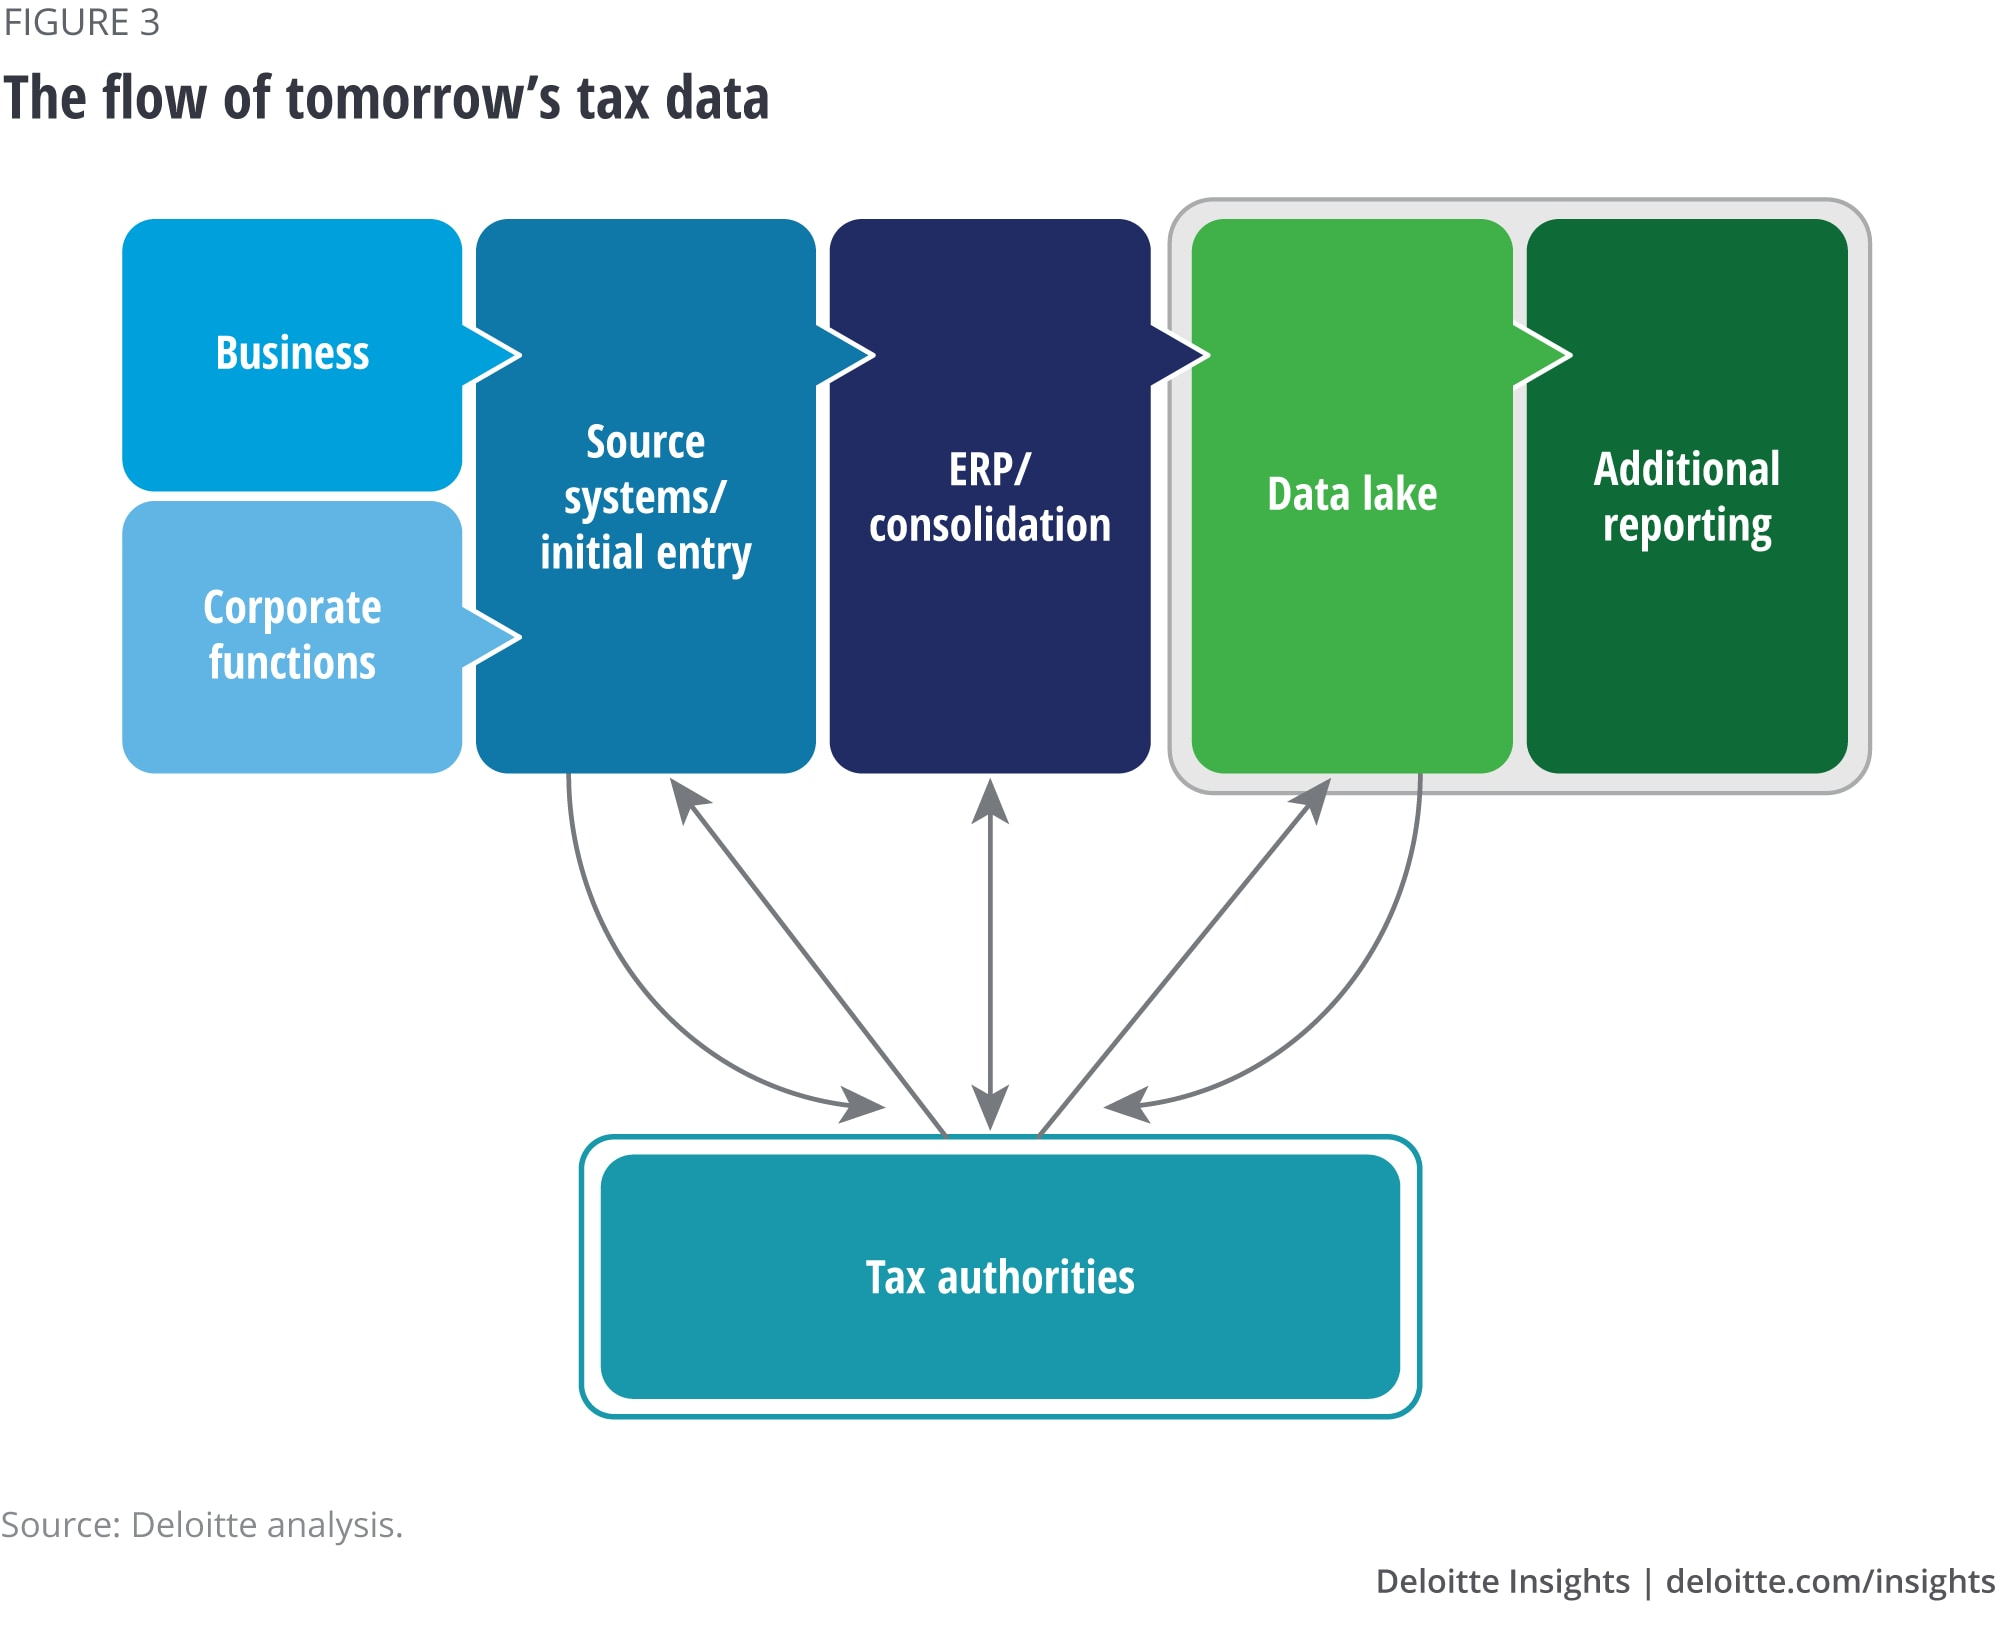 The flow of tomorrow's tax data